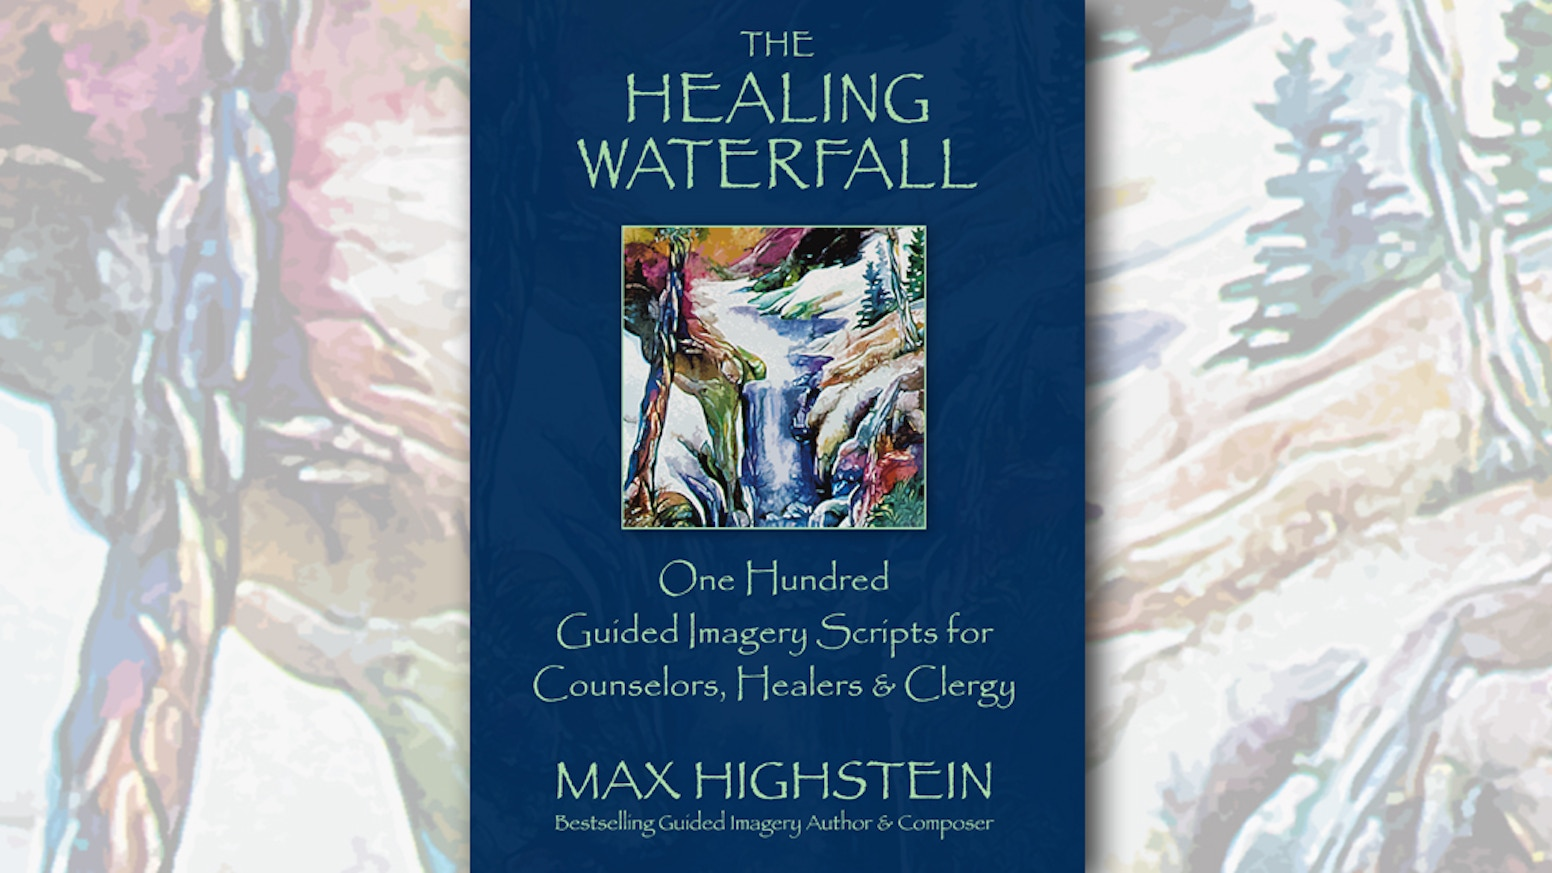 The Healing Waterfall Book: 100 Guided Imagery Scripts by